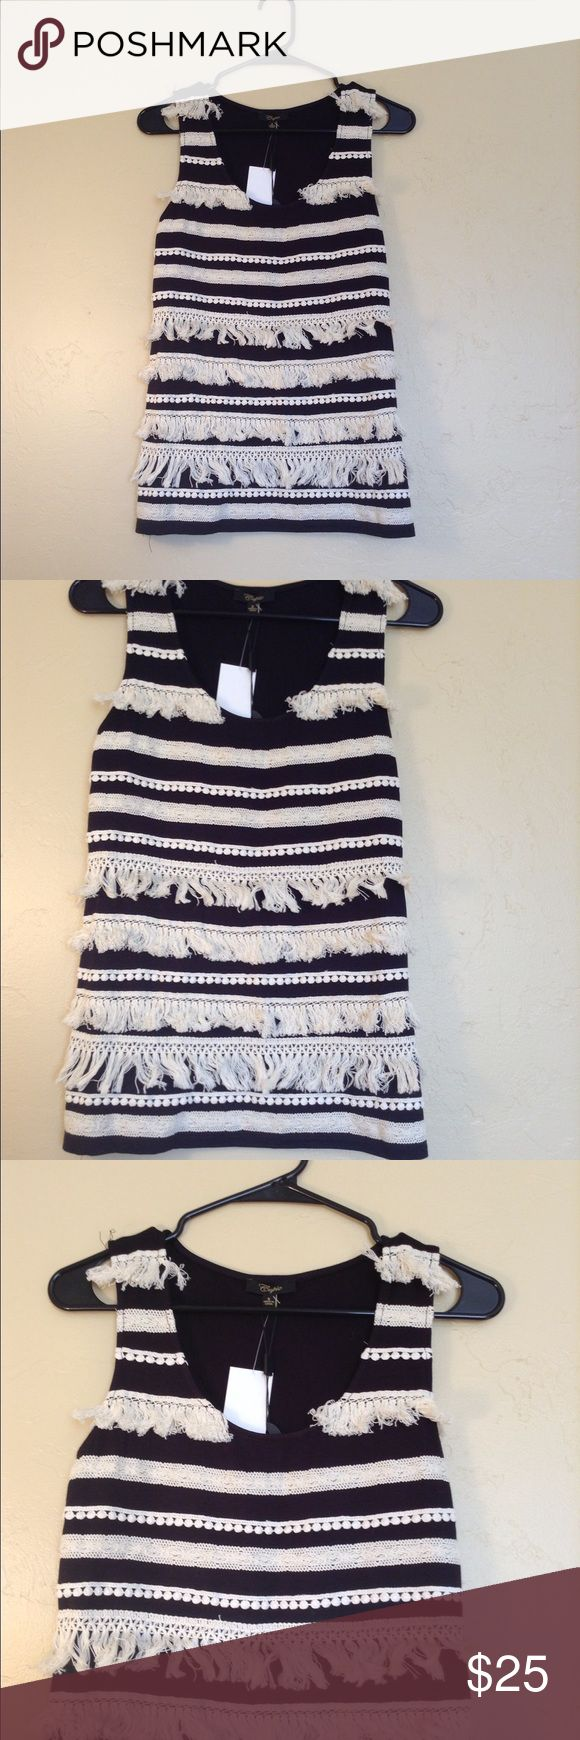 ❤️Cupio Fringe Tank❤️ New with tags! Size small. Fringe tank! Cute with leggings or jeans! Cupio Tops Tank Tops